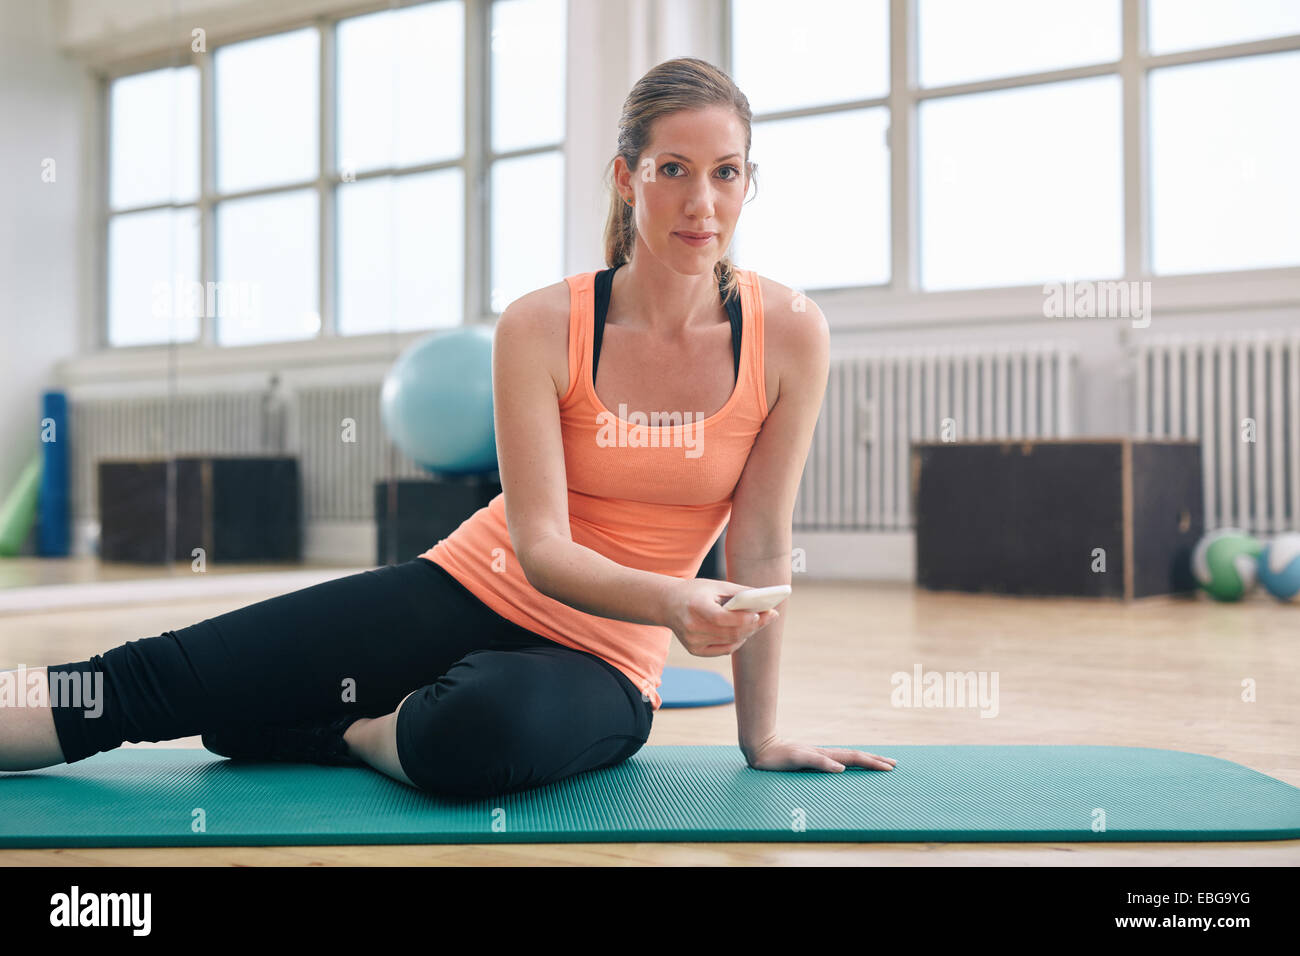 Fitness woman sitting on exercise mat holding her smartphone. Caucasian woman using mobile phone while at gym. - Stock Image